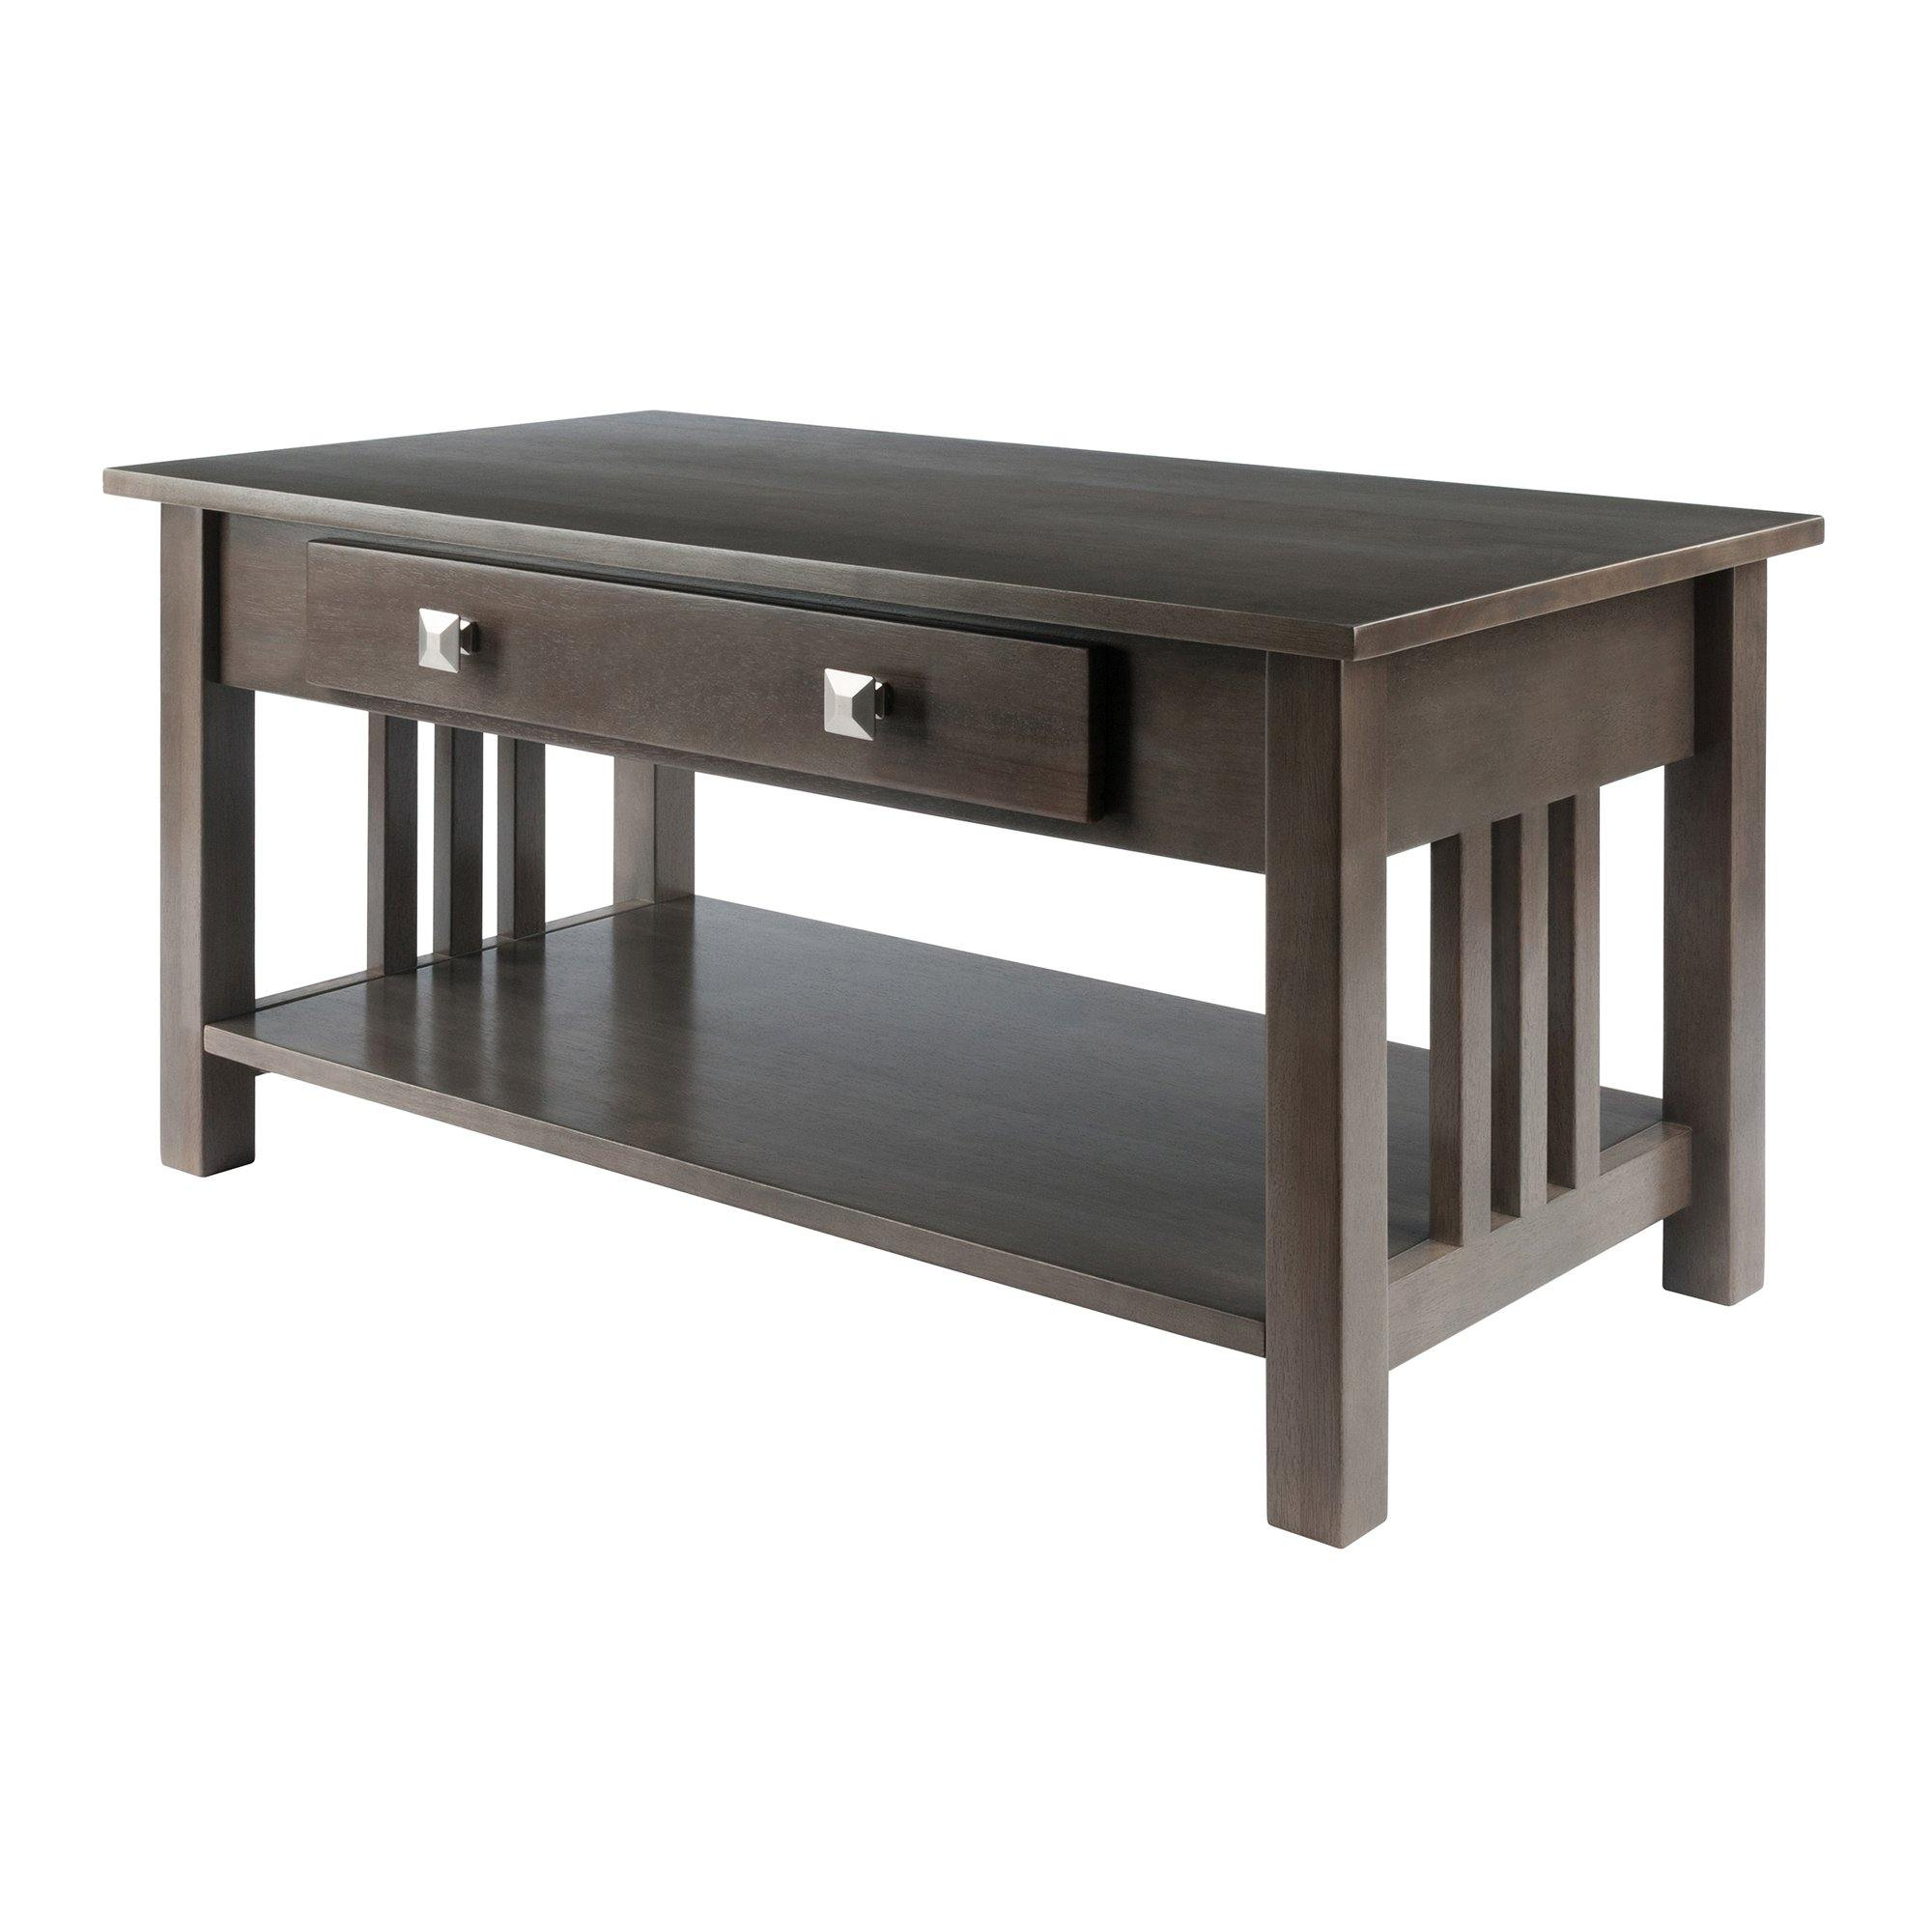 Stafford Coffee Table, Oyster Gray - My USA Furniture